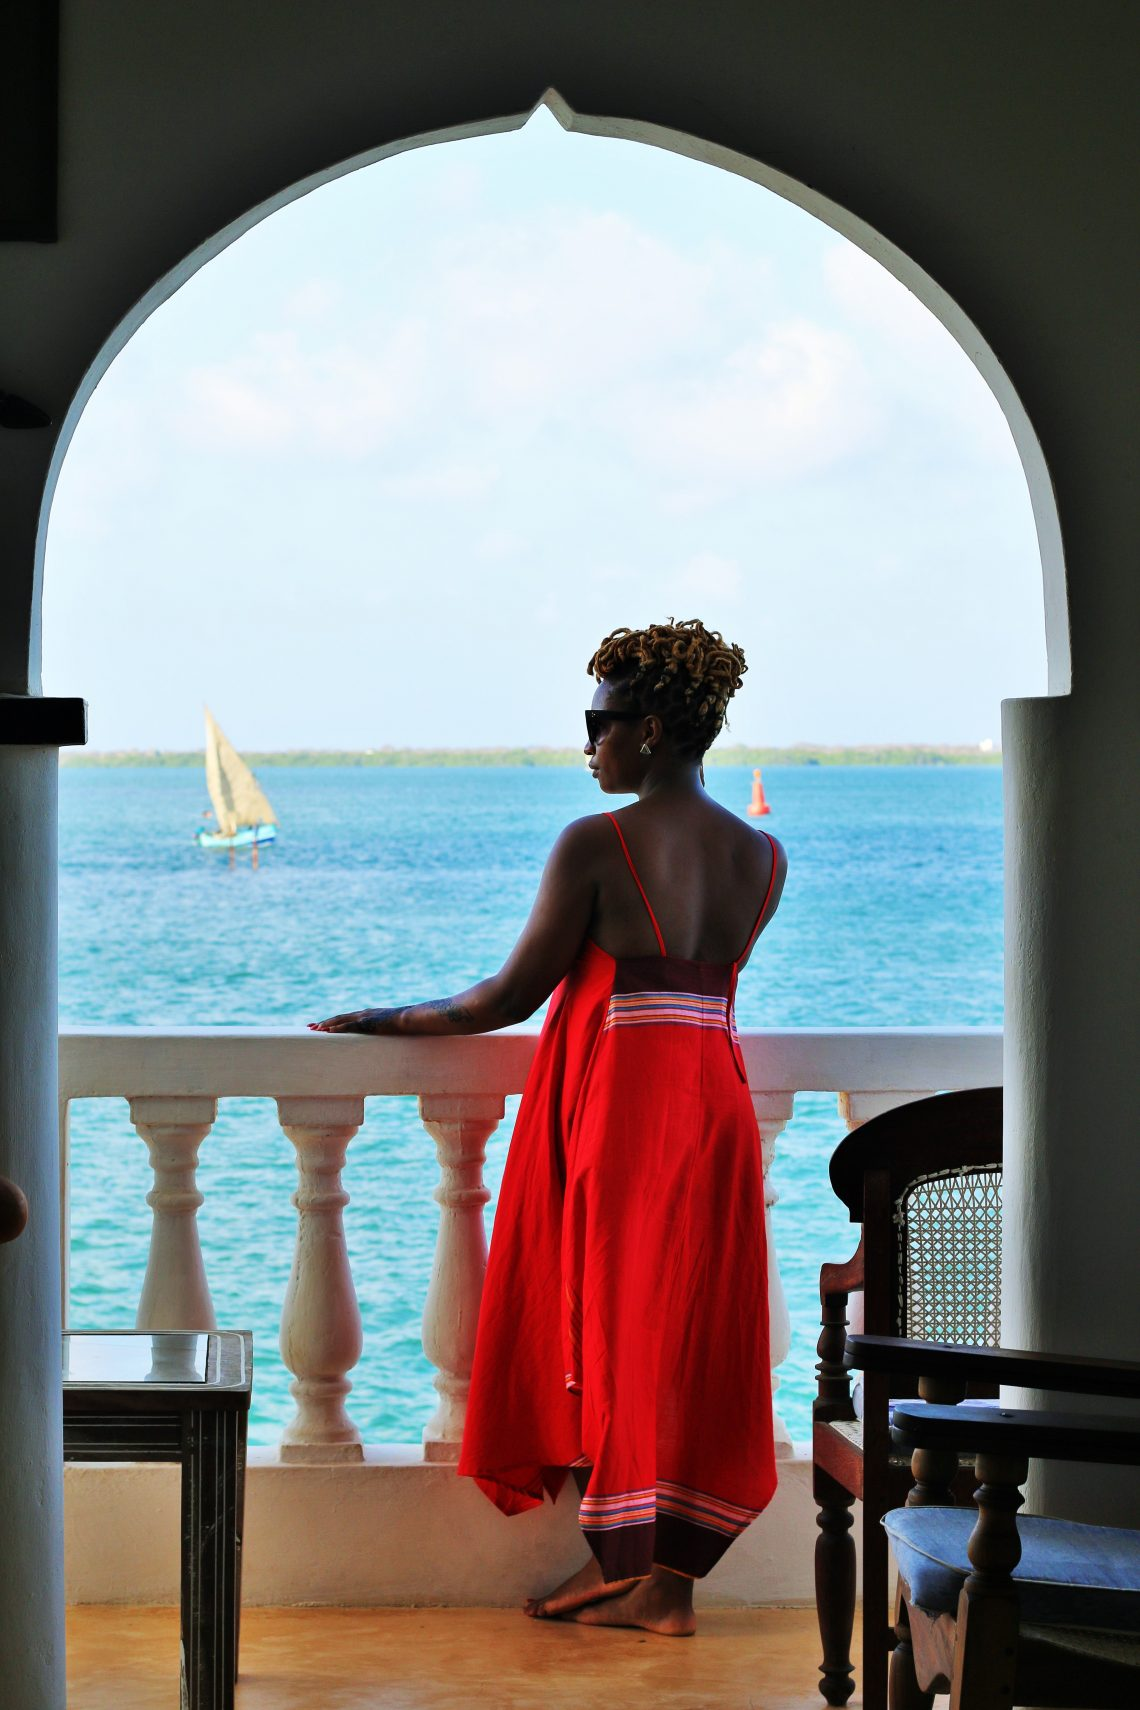 Lamu travel guide